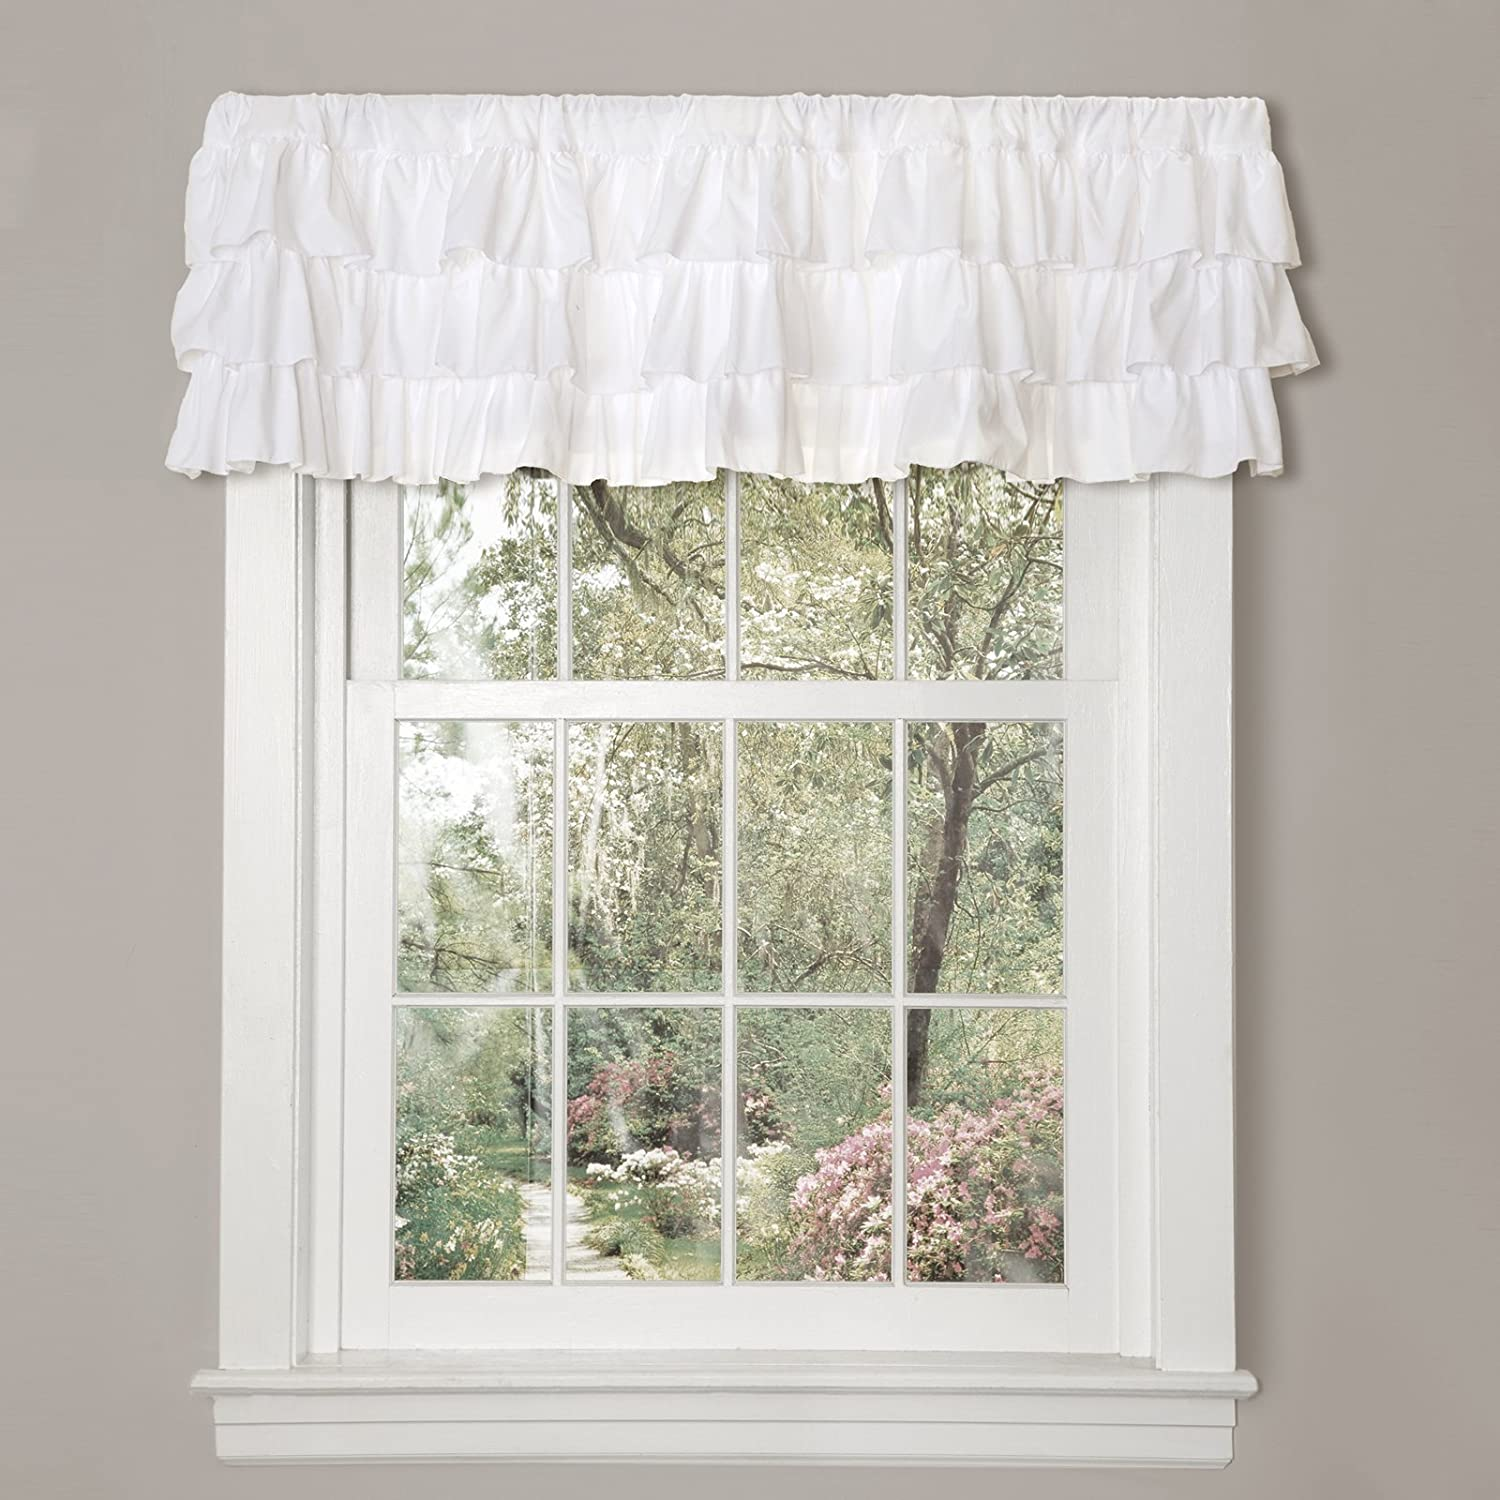 Lovely Amazon.com: Lush Decor Belle Valance, 18 X 84 Inches, White: Home U0026 Kitchen